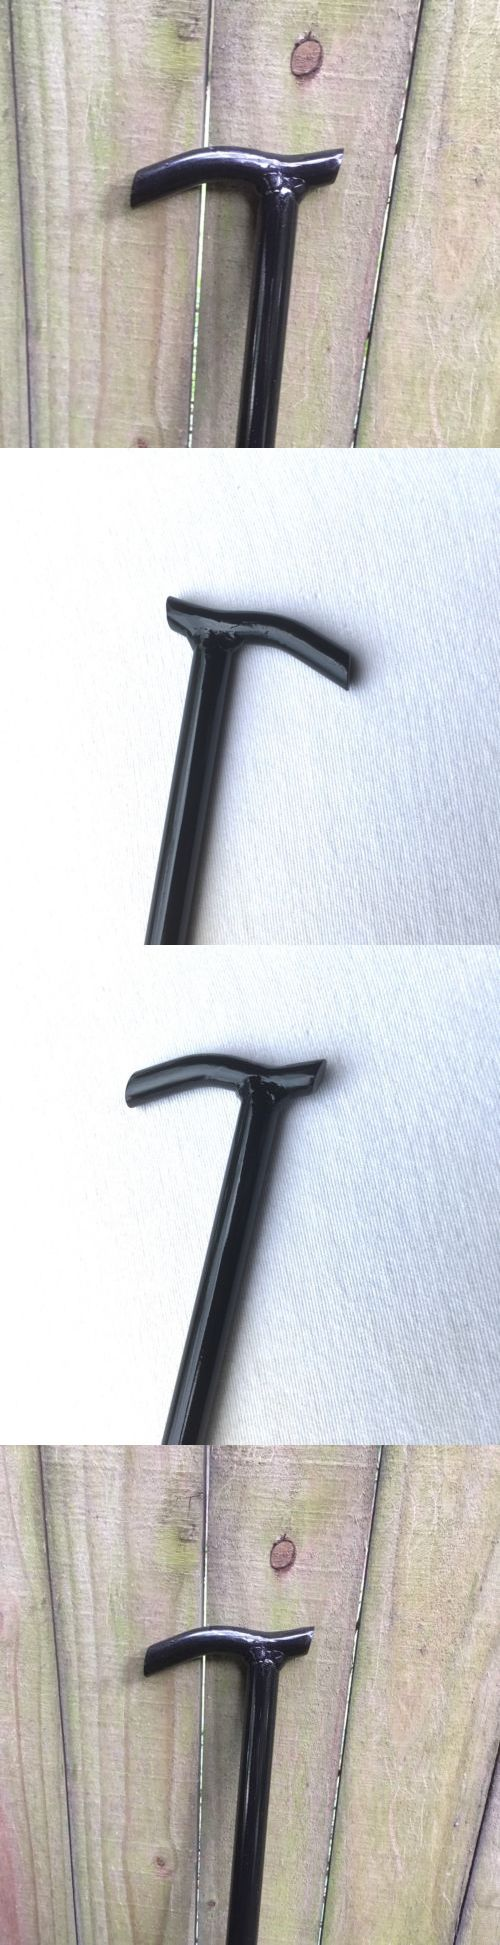 Sticks 179794: The Best Self Defense Walking Cane, Stick. Martial Arts Combat Cane Derby Handle -> BUY IT NOW ONLY: $79.5 on eBay!